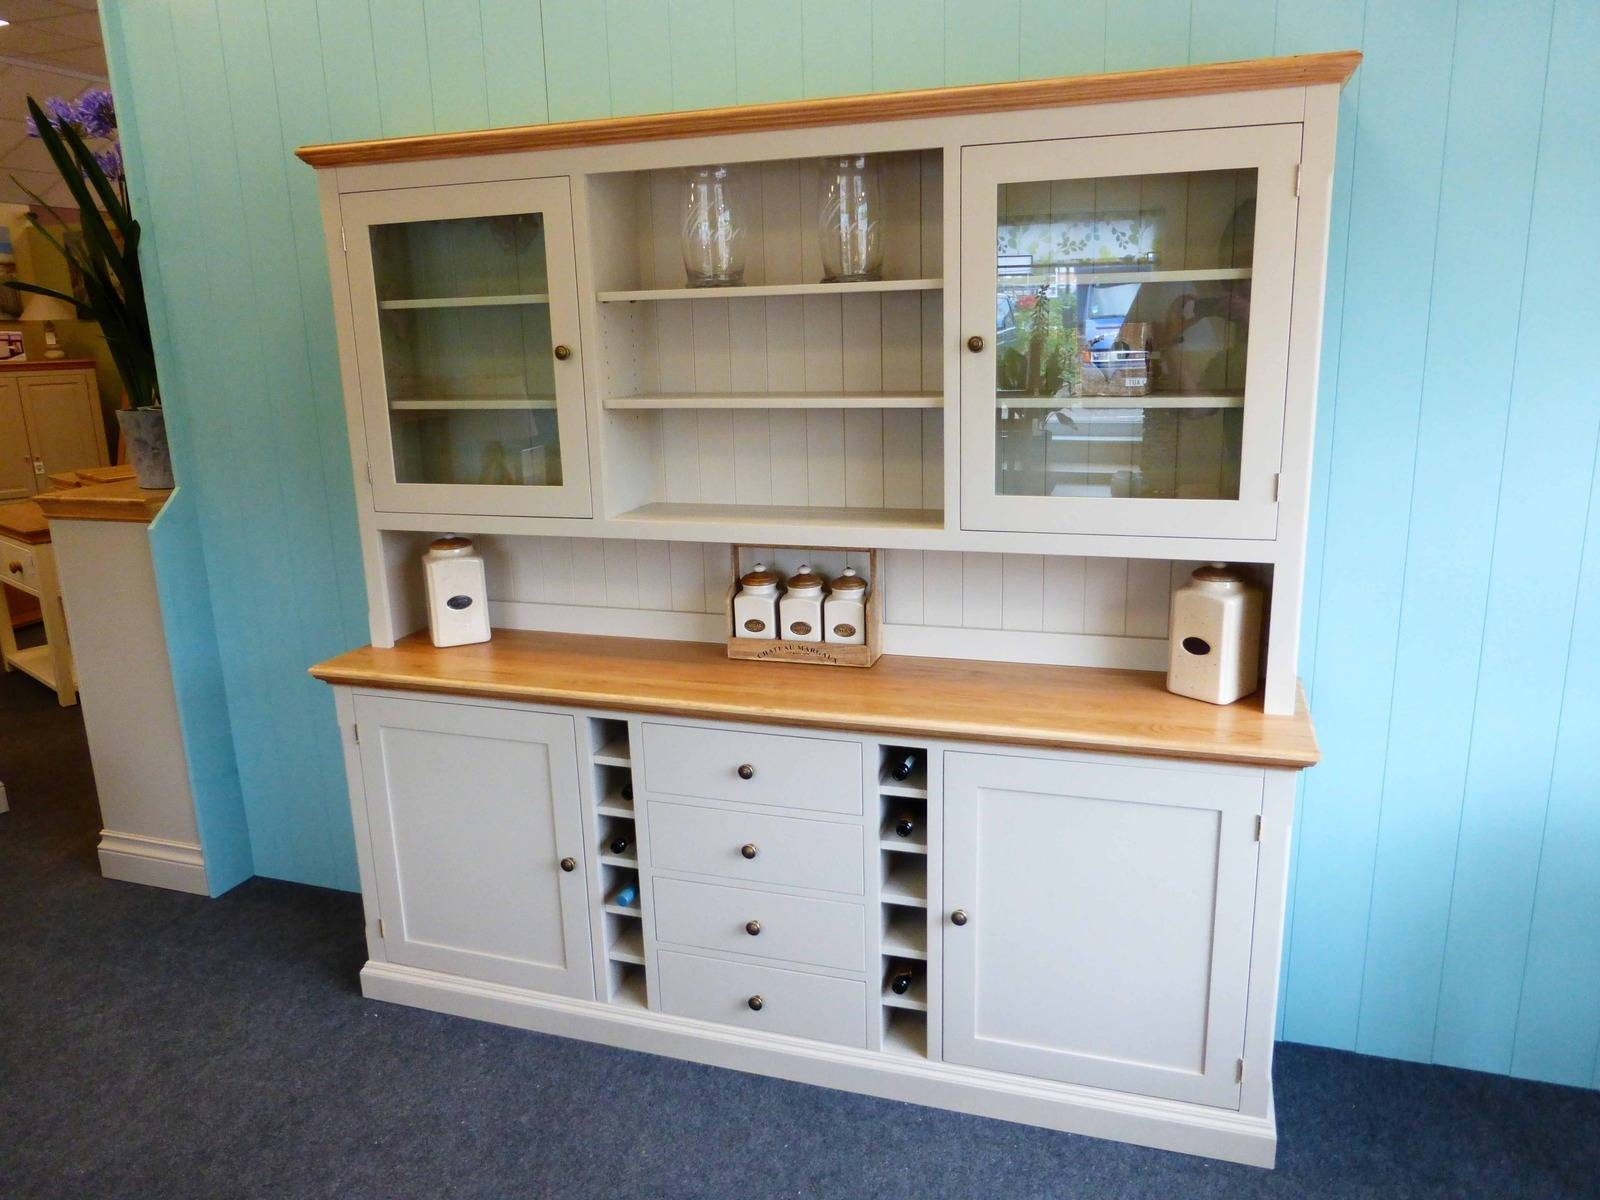 Painted Dresser With Wine Rack - Bespoke Kitchen And Dining Room in Kitchen Dressers and Sideboards (Image 9 of 15)